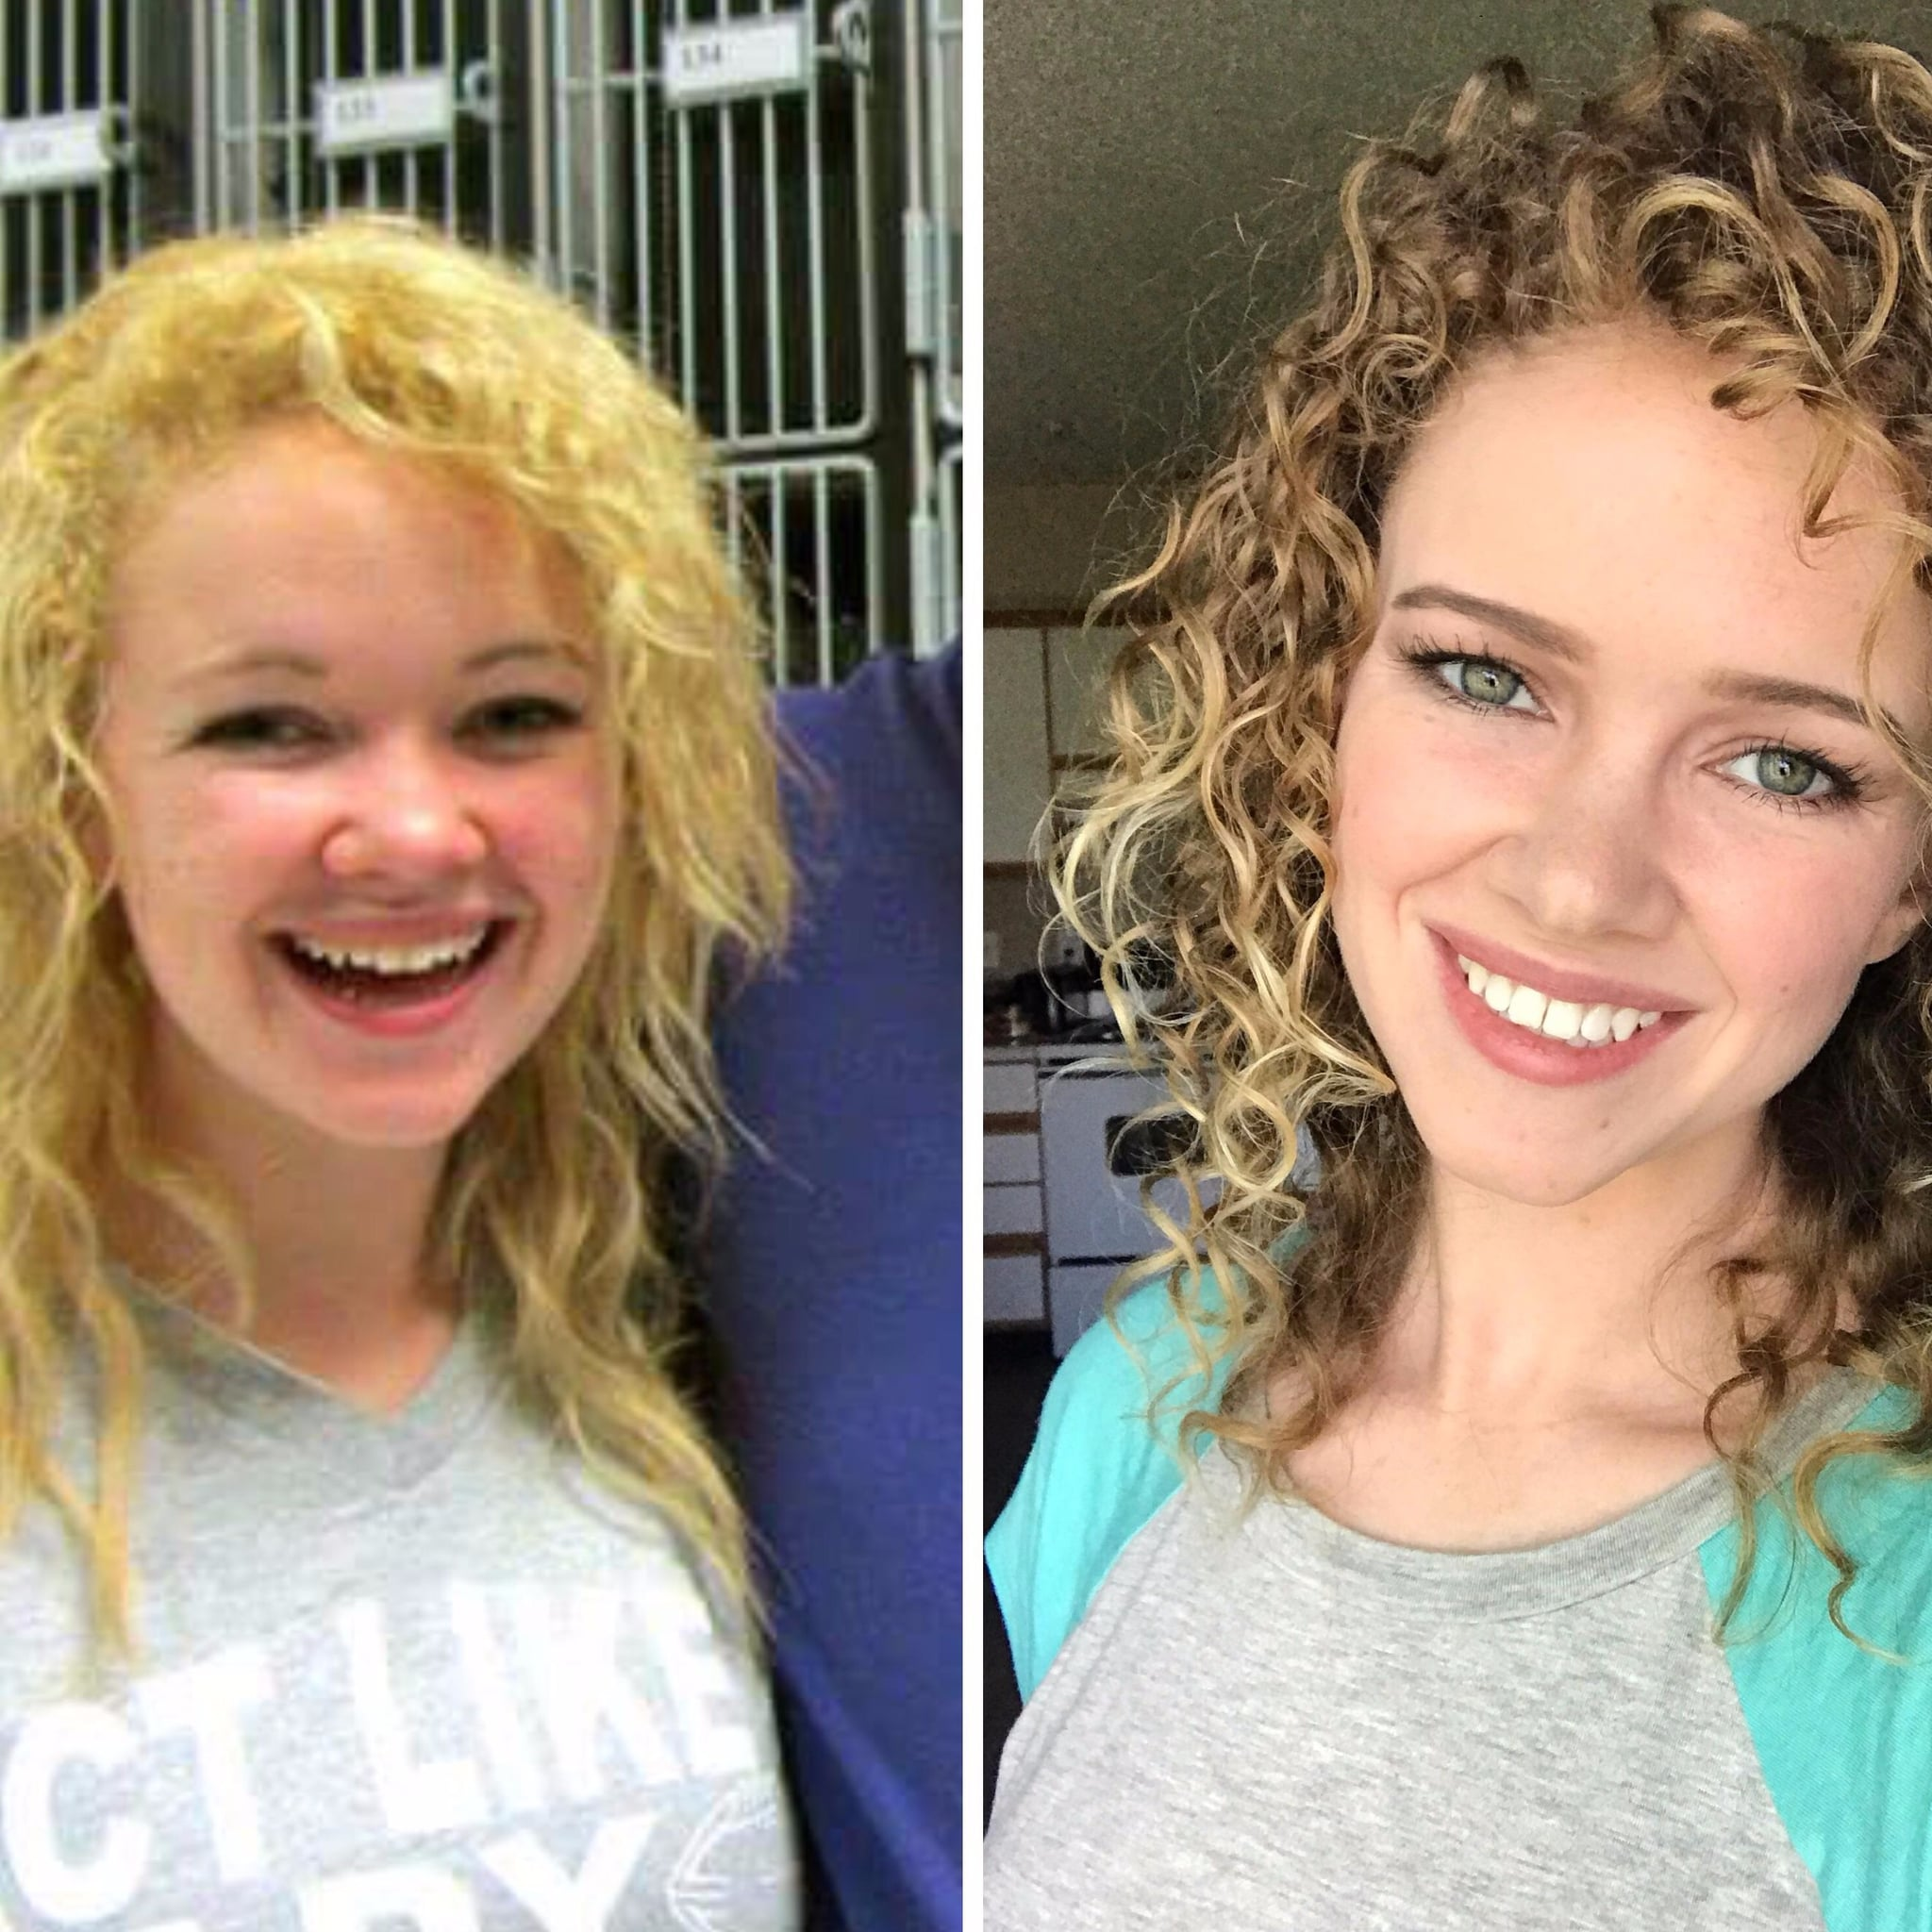 Woman Shares Curly Hair Tips on Reddit | POPSUGAR Beauty